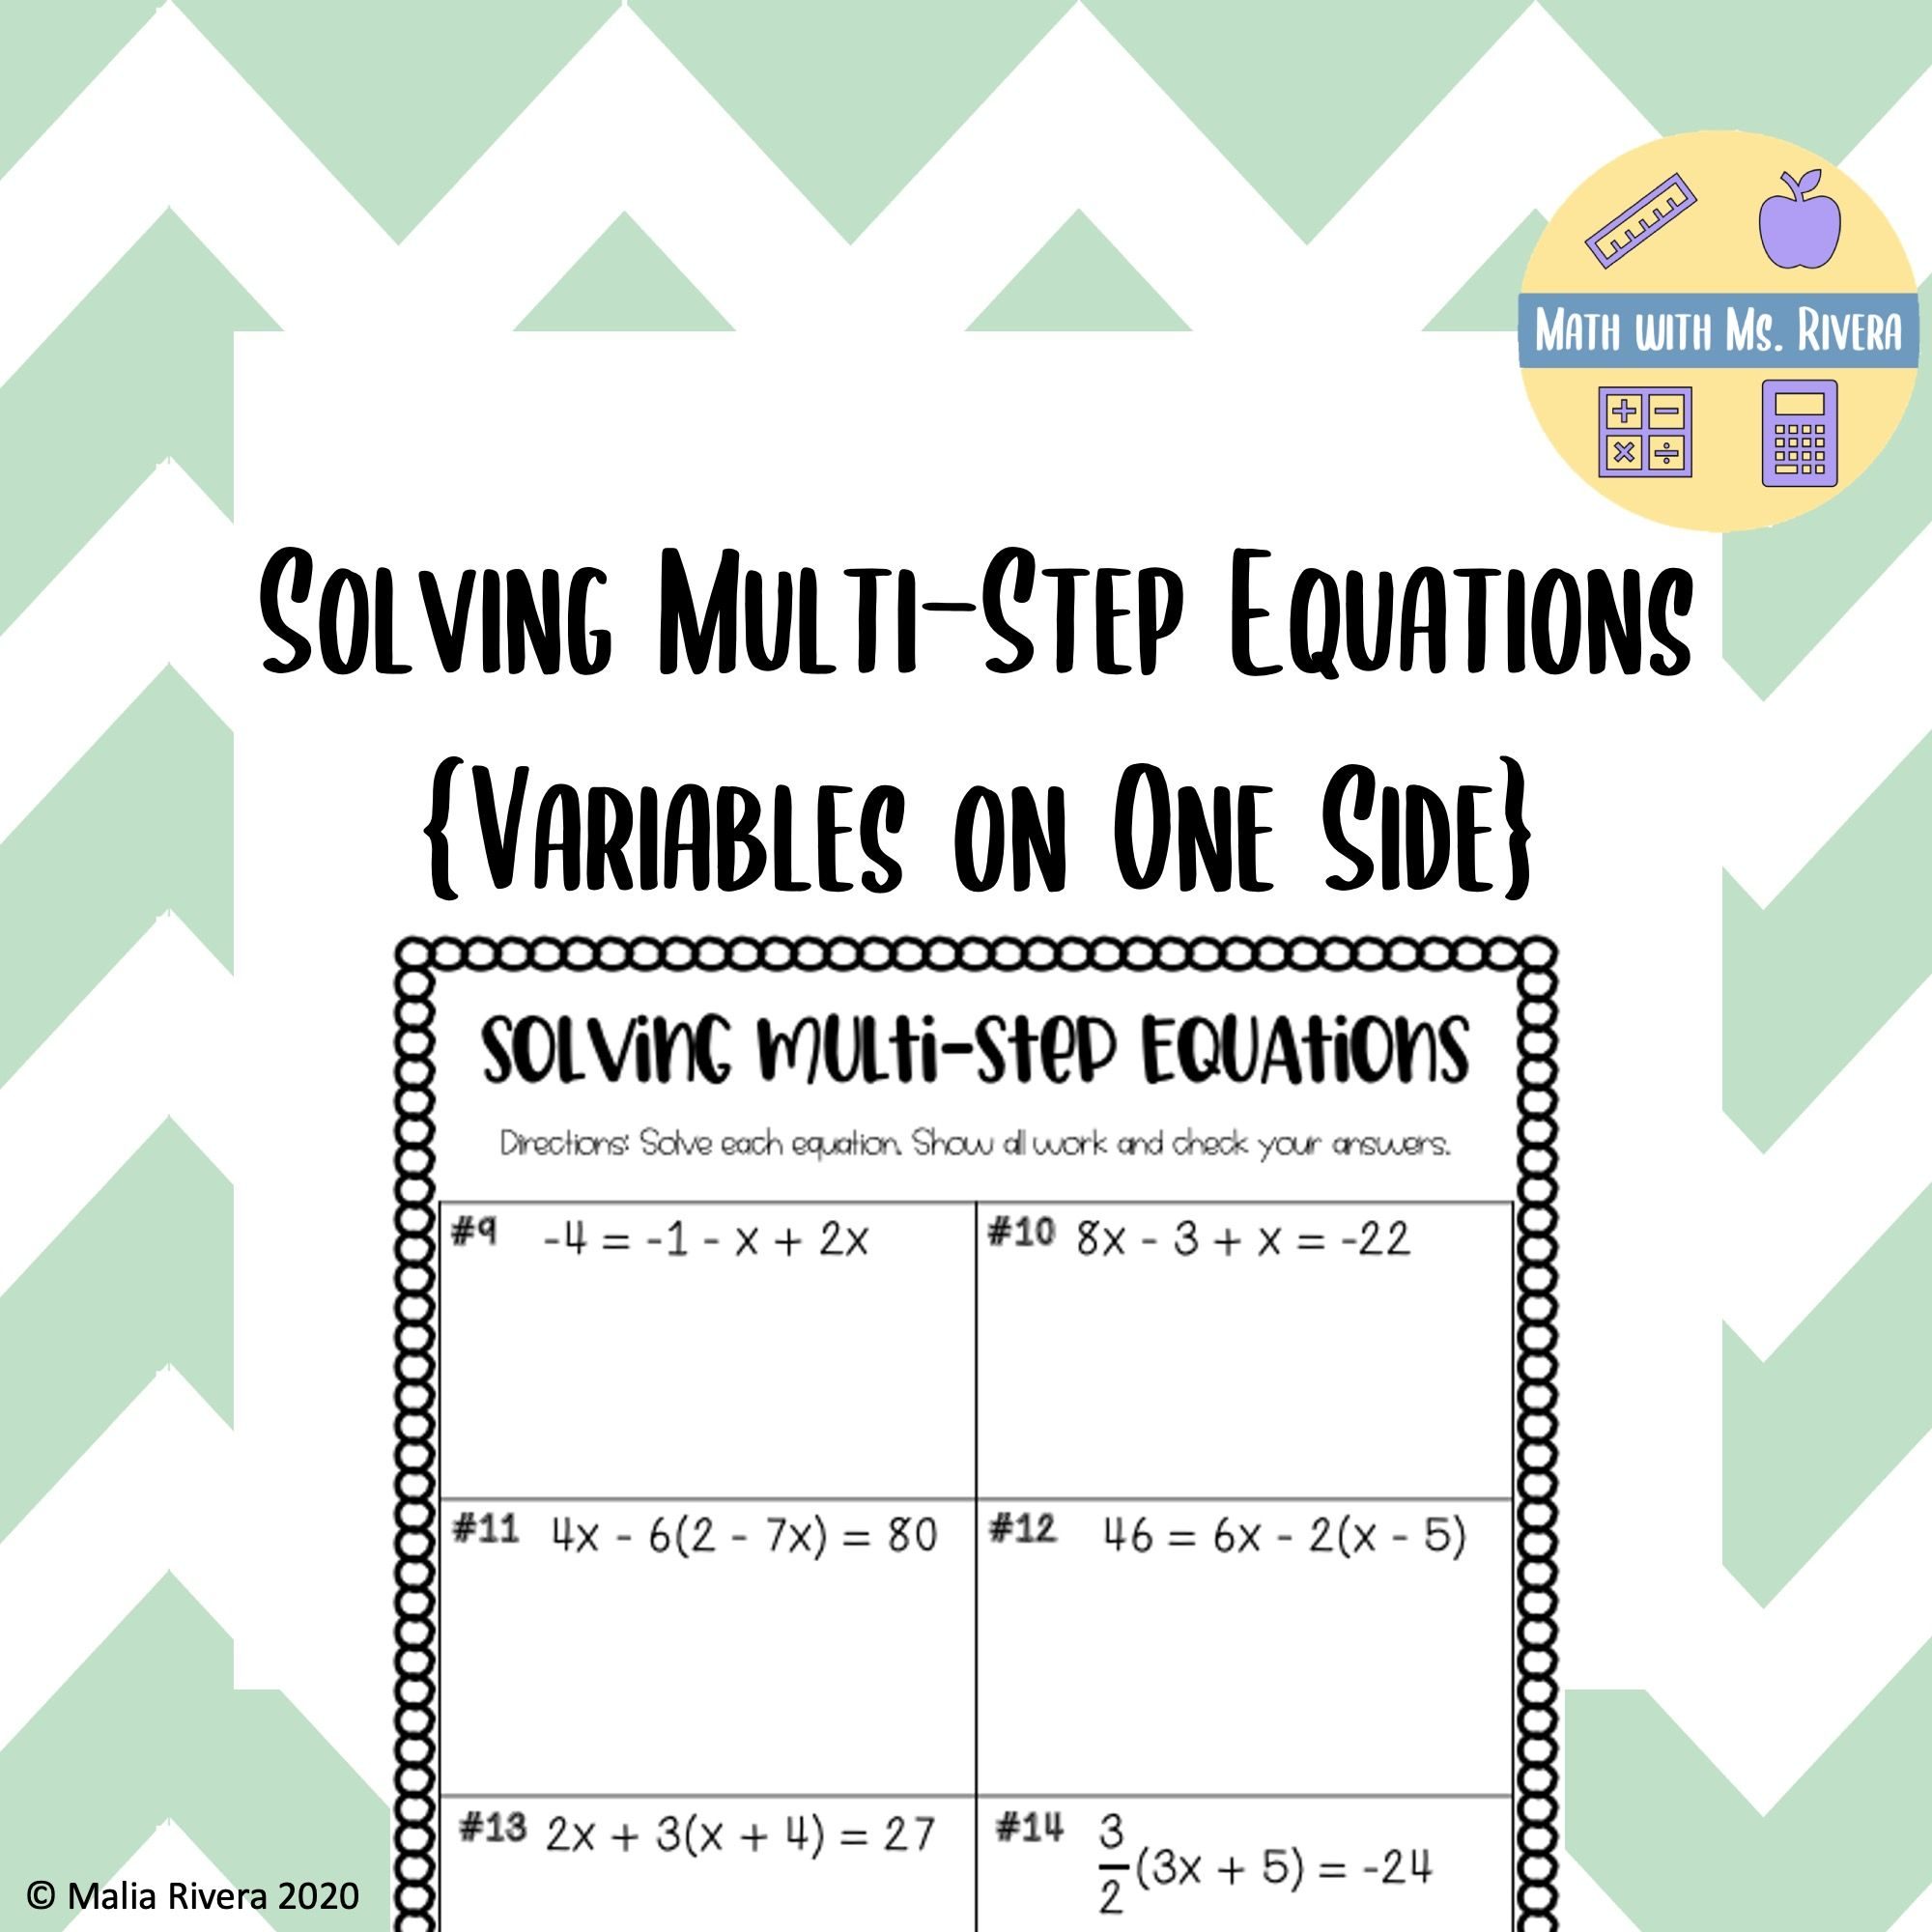 Solving Multi Step Equations Worksheet Multi Step Equations Worksheets Multi Step Equations Solving Multi Step Equations